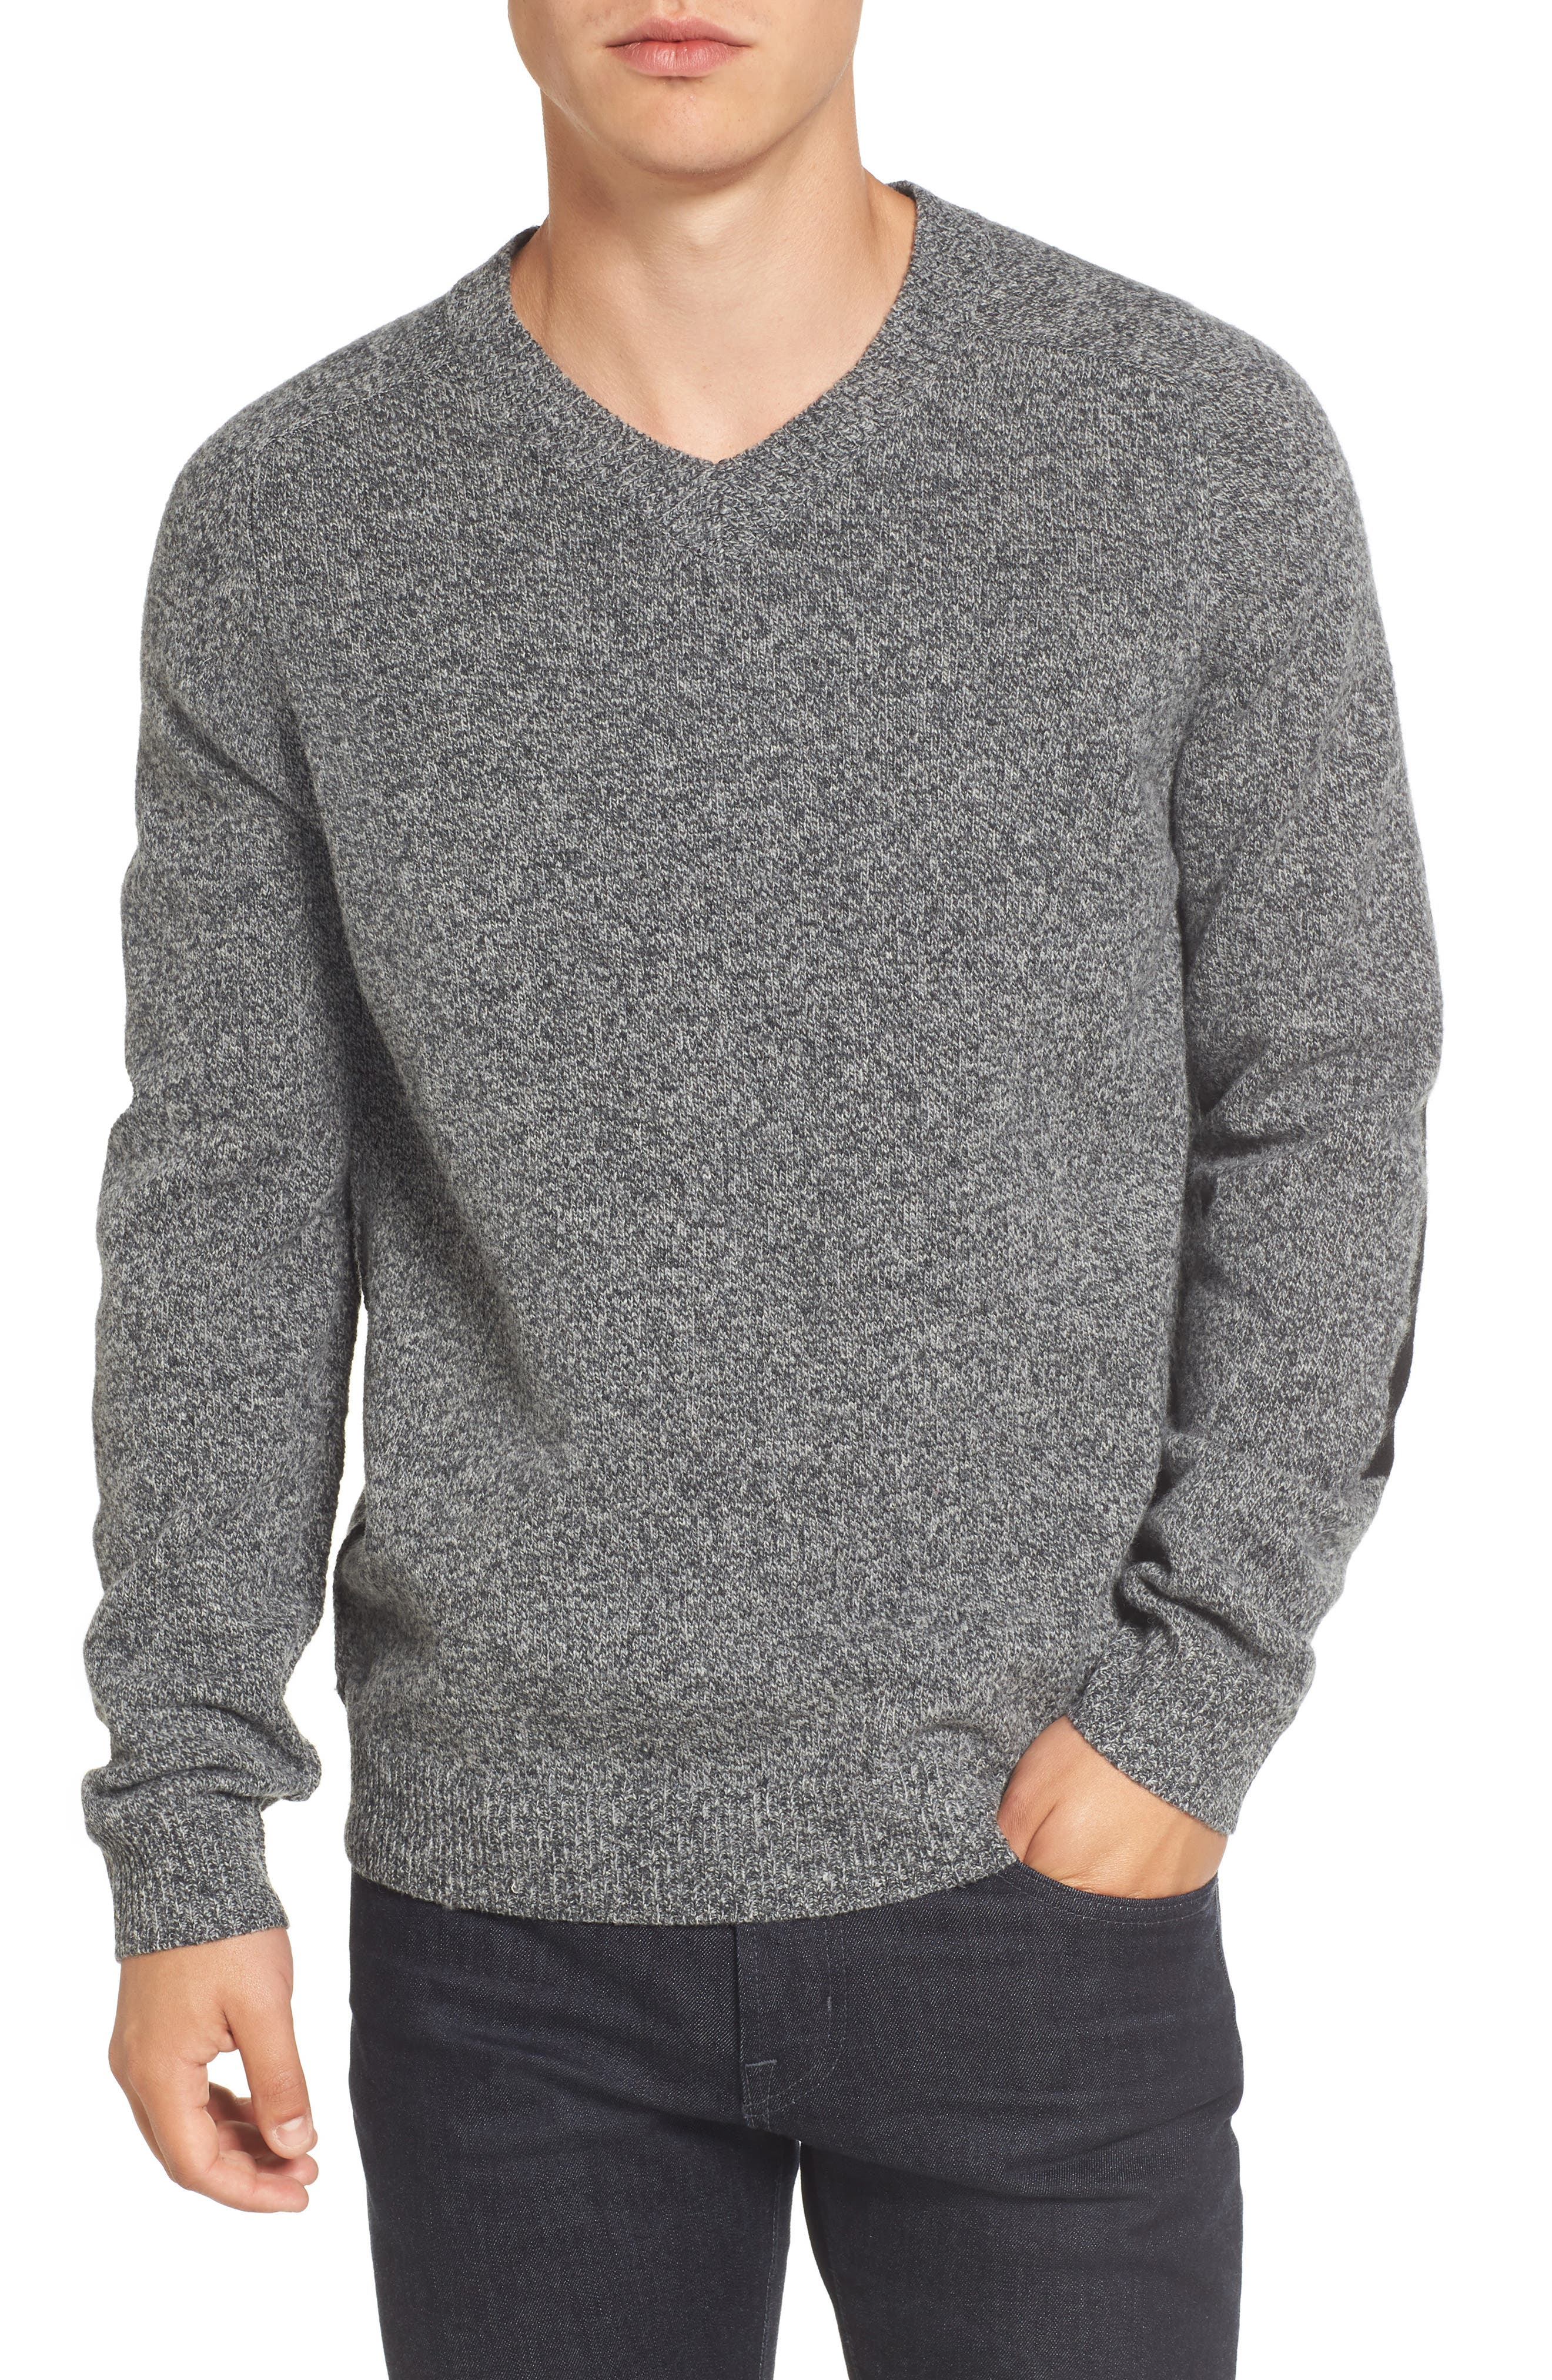 Elbow Patch Sweater,                             Main thumbnail 1, color,                             Charcoal Twist/ Black